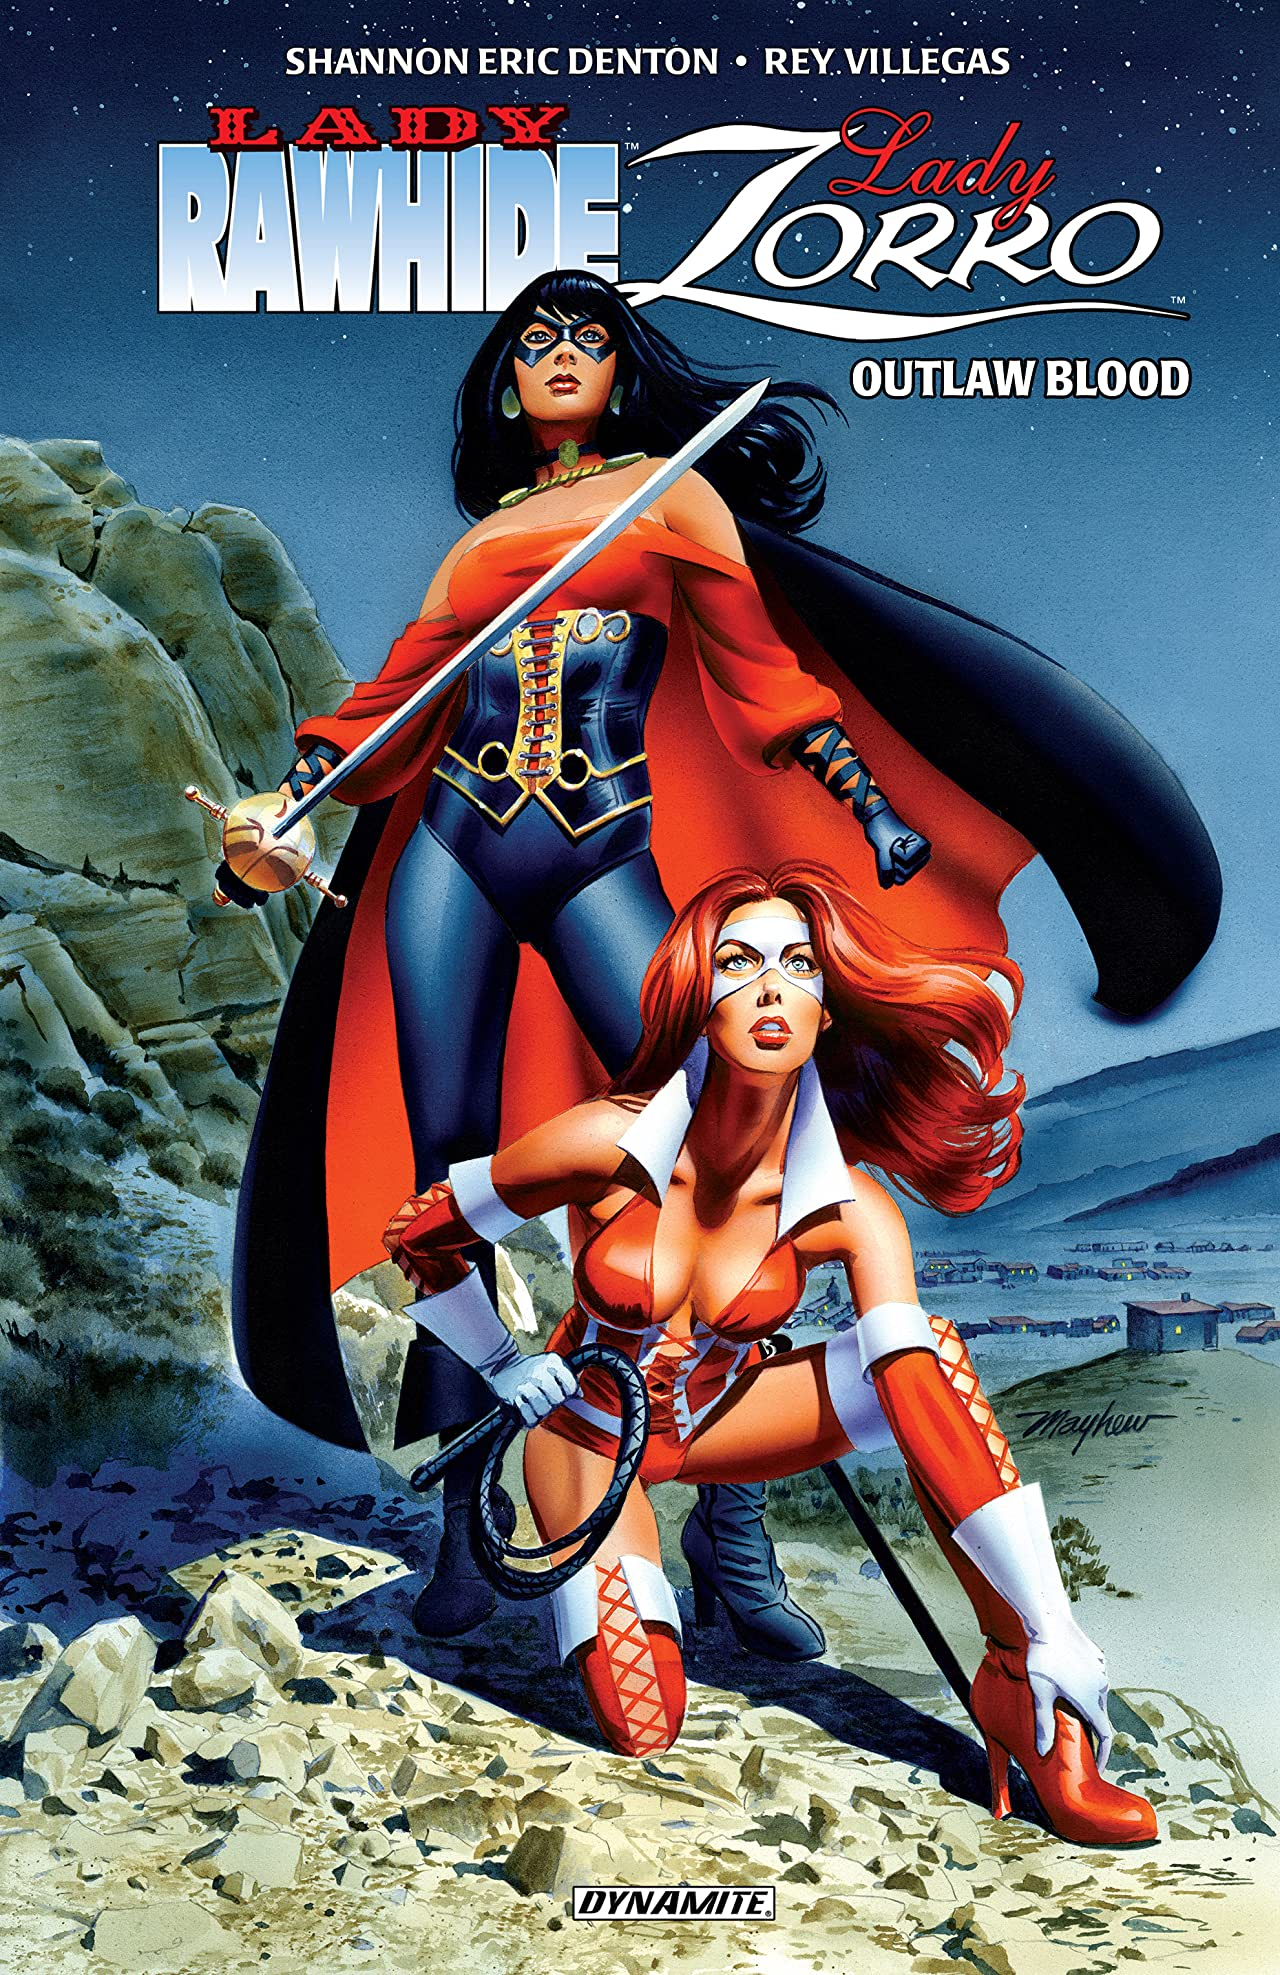 Lady Rawhide/Lady Zorro: Outlaw Blood